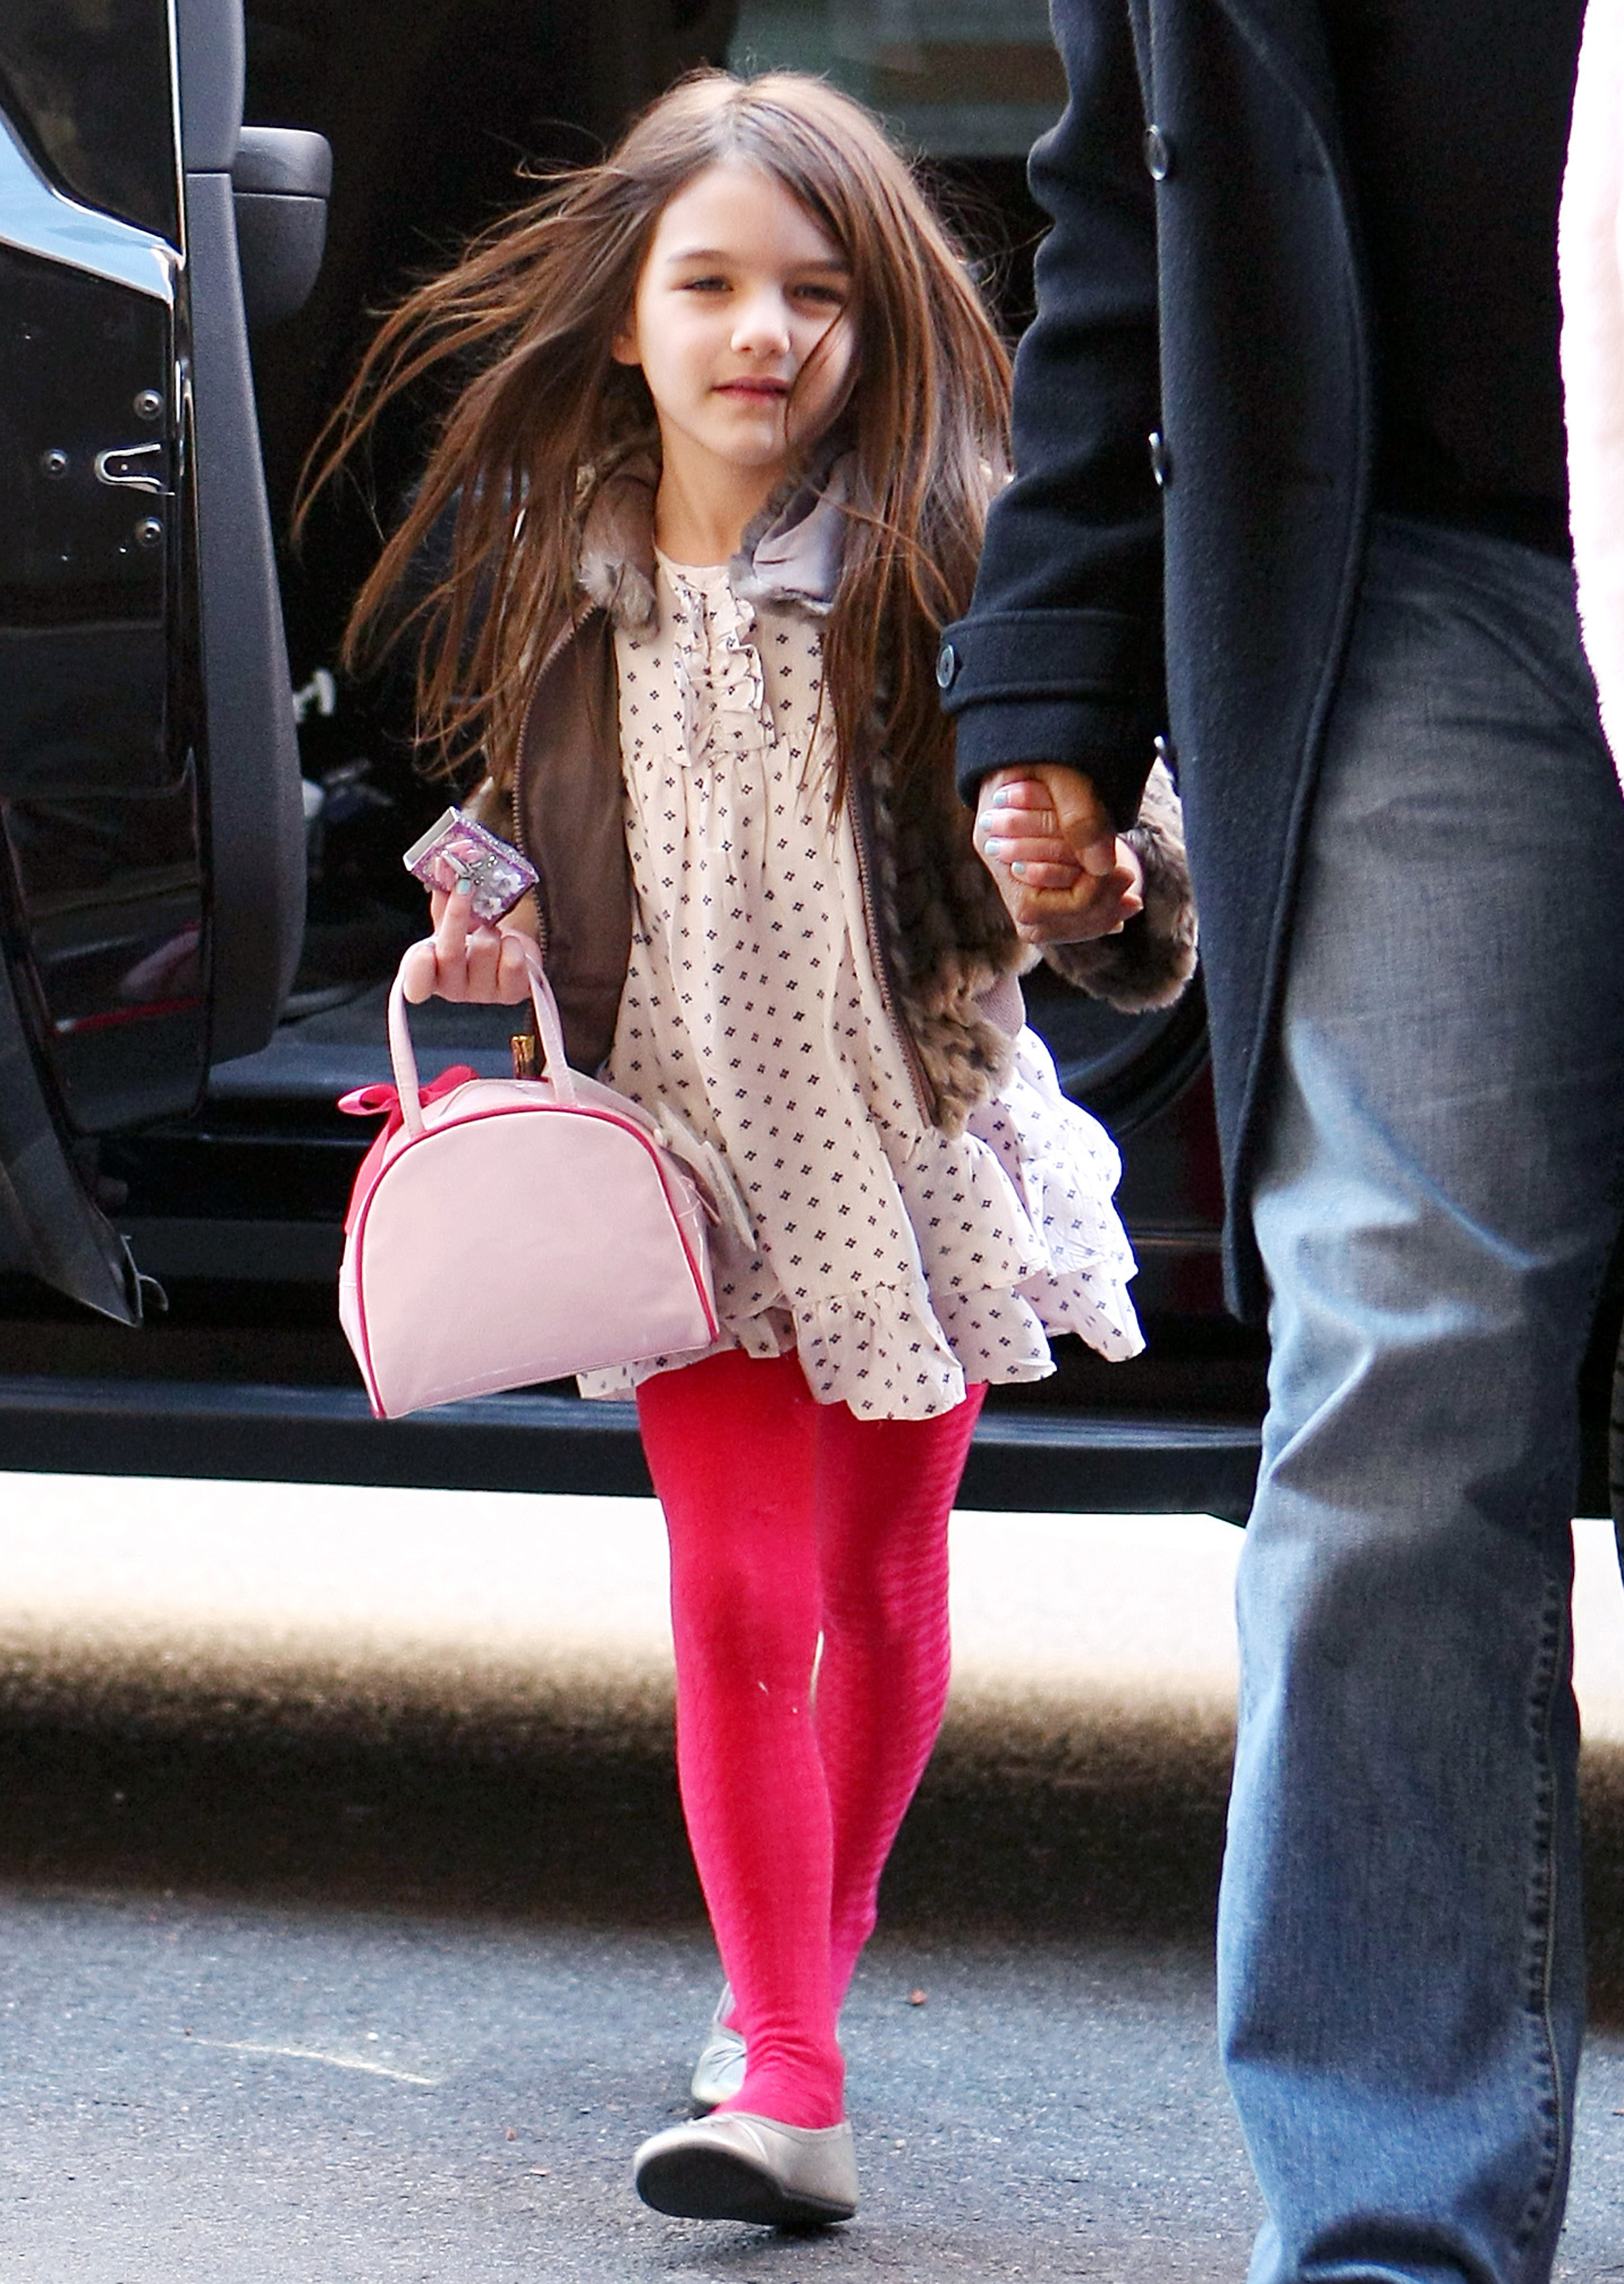 The Kid S Got Style Suri Cruise In Bright Red Tights